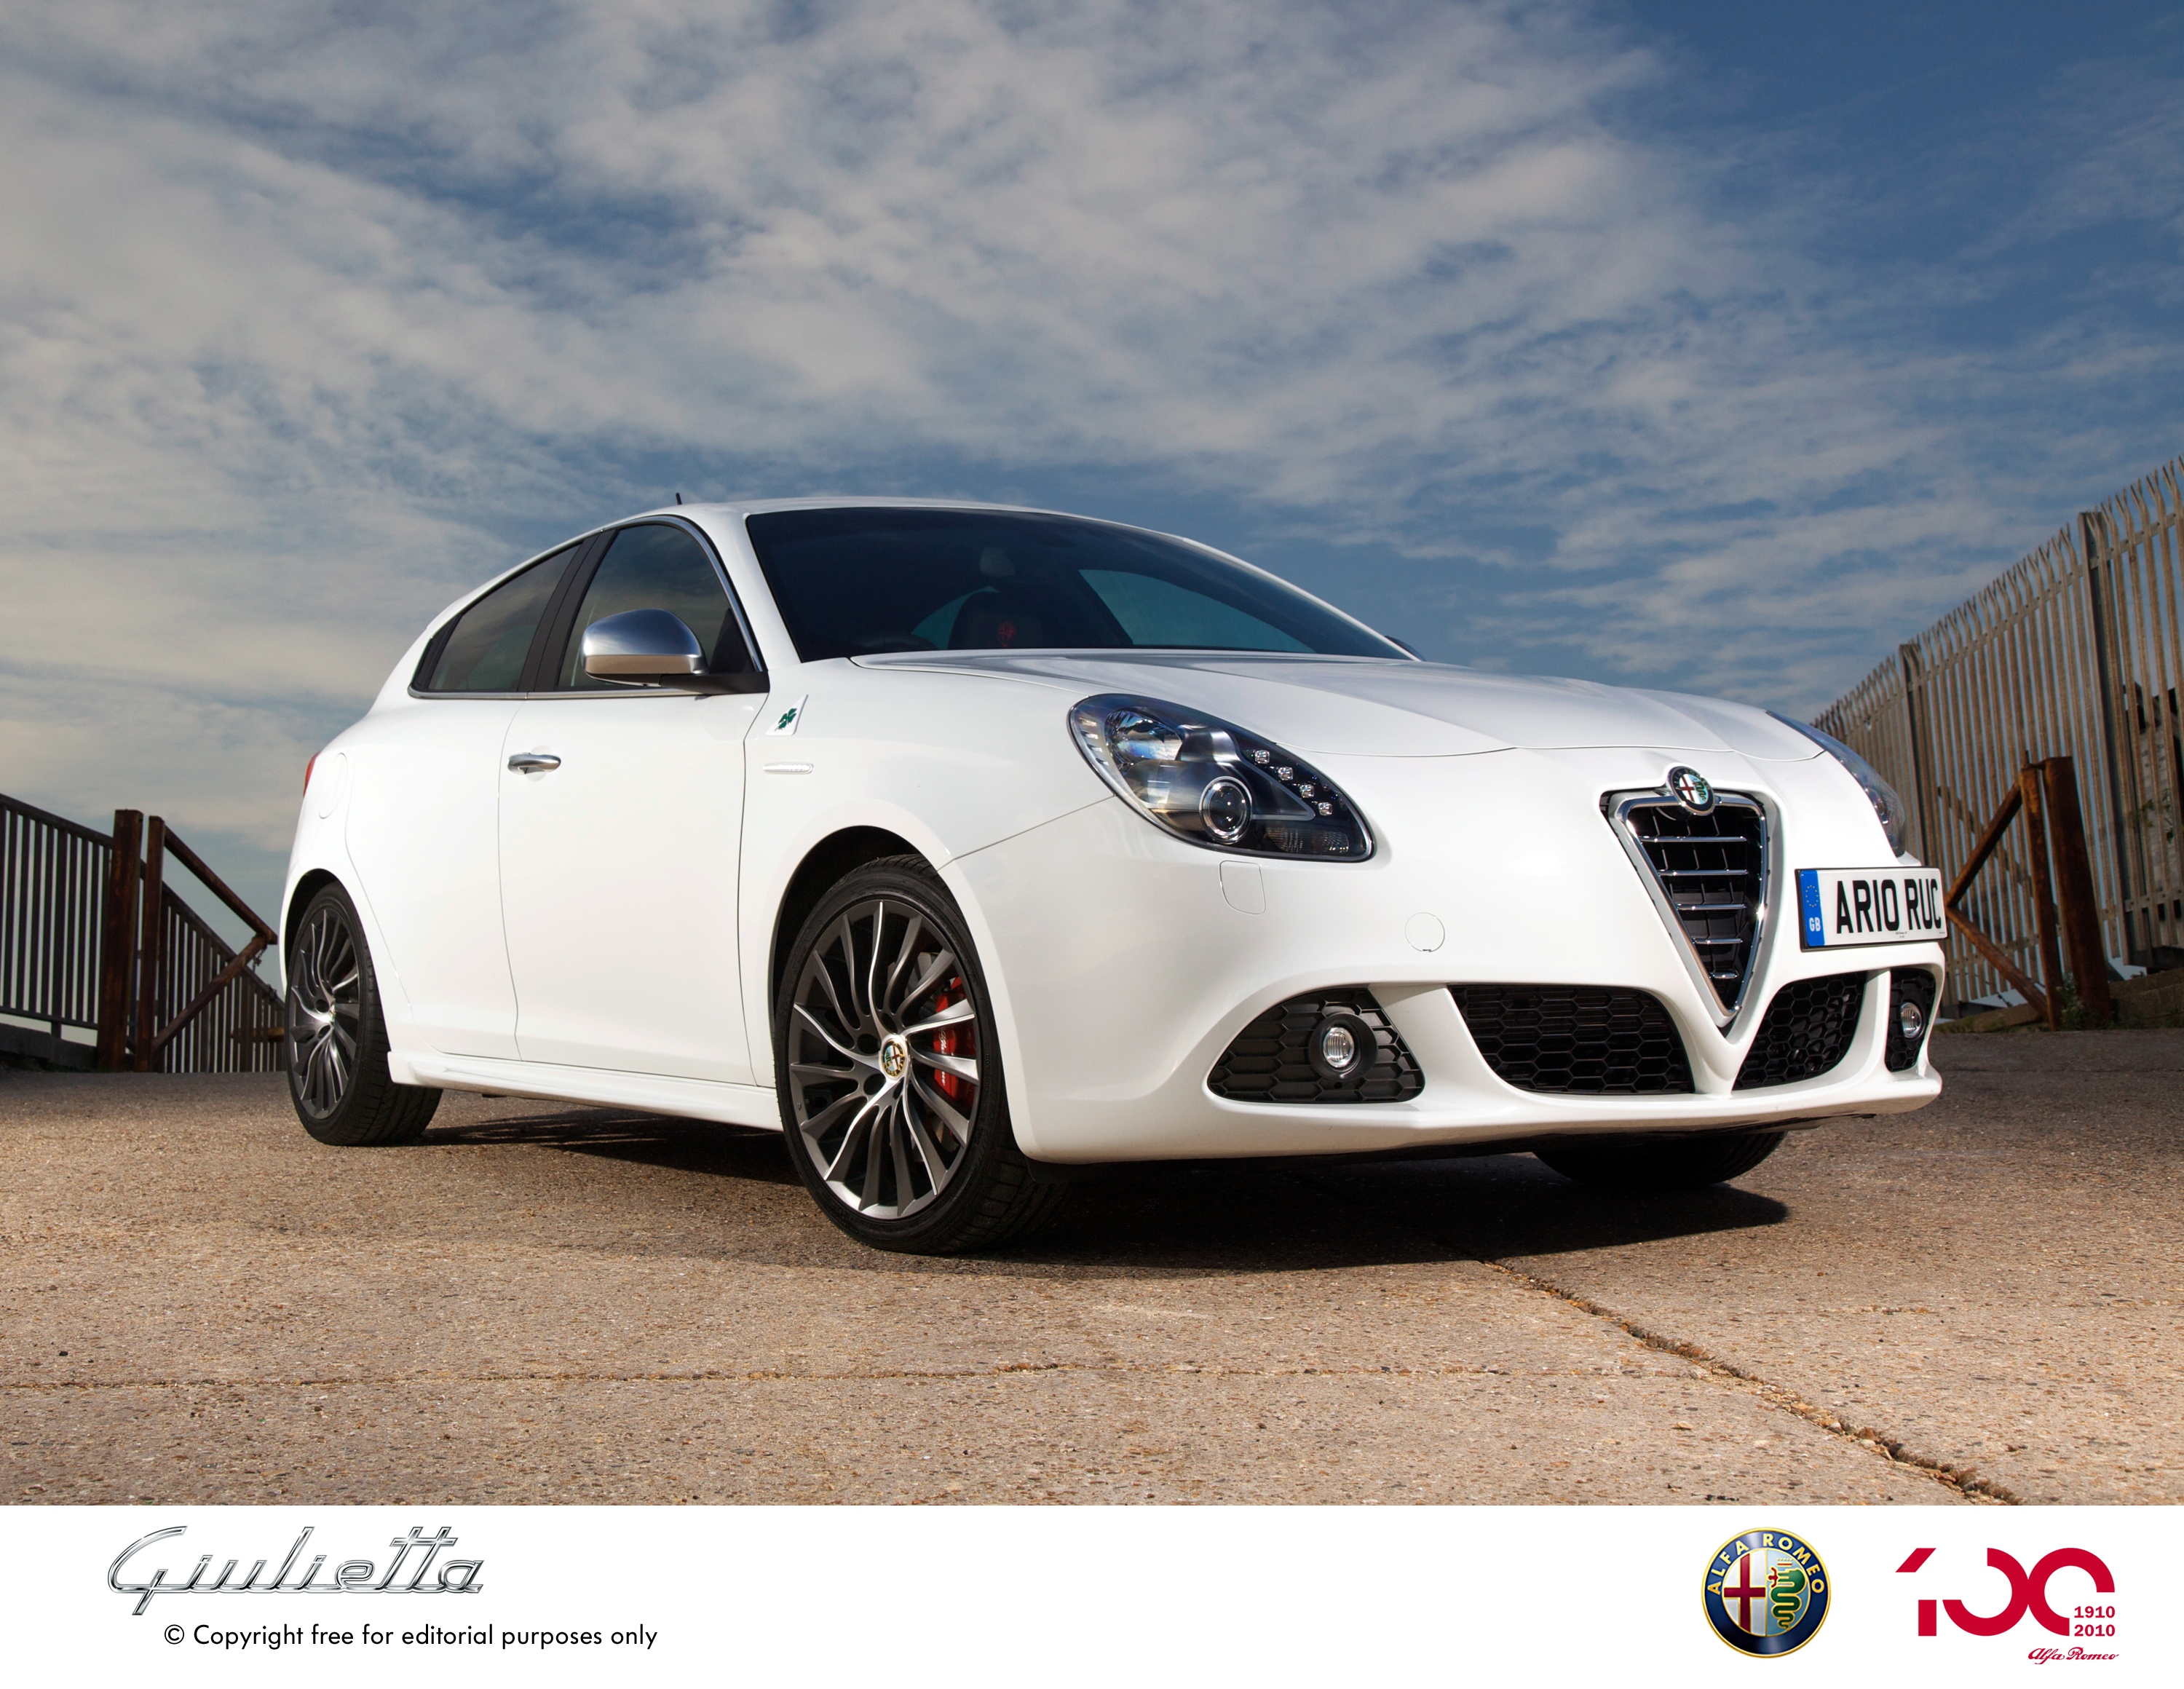 Alfa Giulietta In Uk Press Pack Fiat Group Automobiles Romeo 147 Manual Free Download